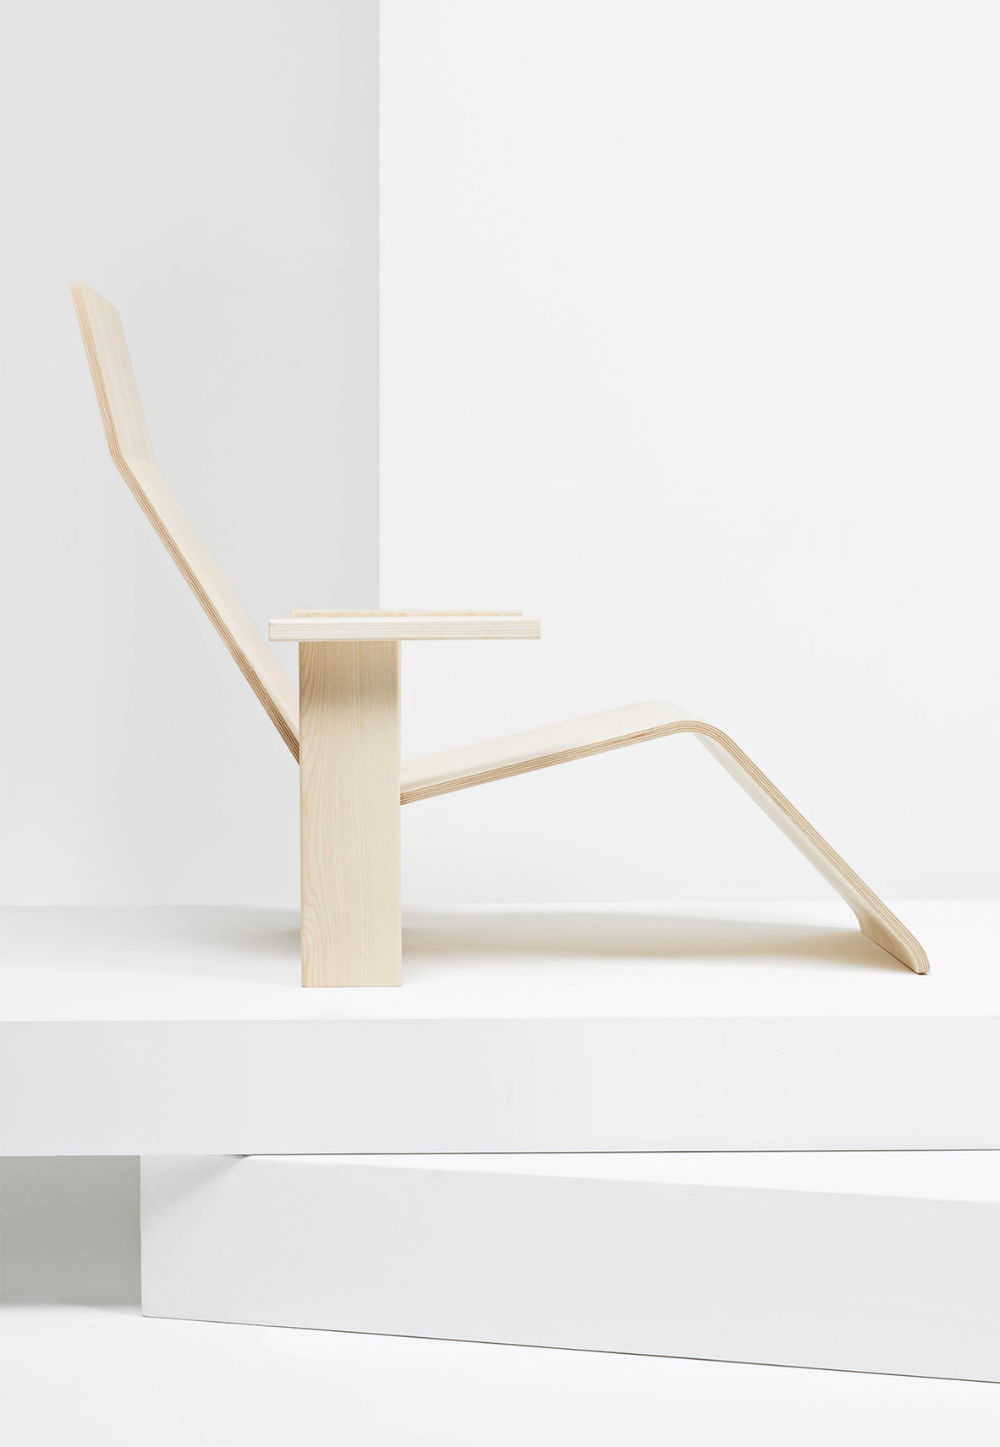 Bouroullec Brothers Design Minimal Ash Wood Chaise Lounge For Mattiazzi In 2020 Furniture Collection Furniture Design Living Room Italian Furniture Brands